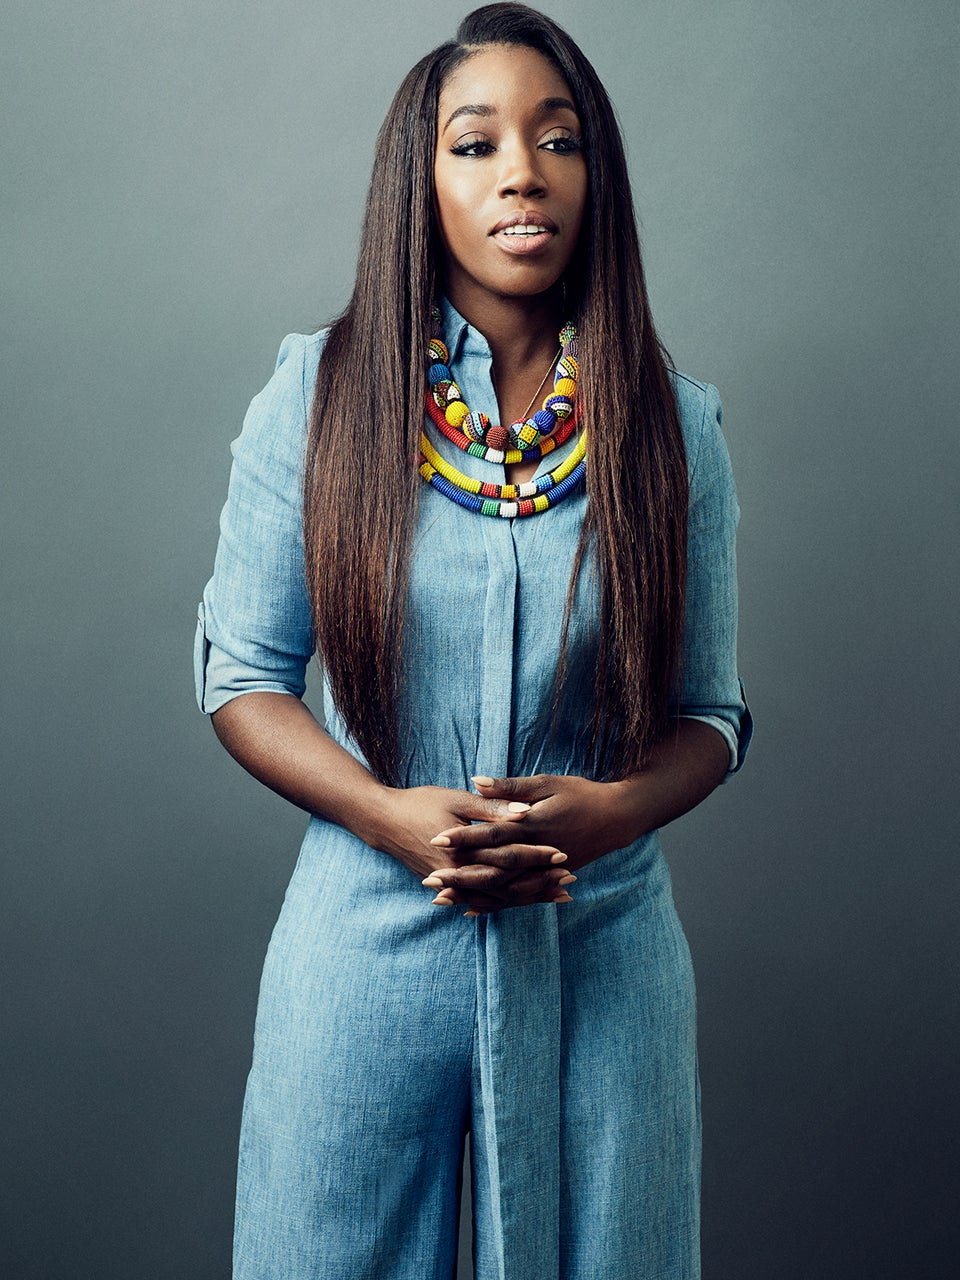 The Love Lessons That Inspired Estelle's New Single 'Love Like Ours'